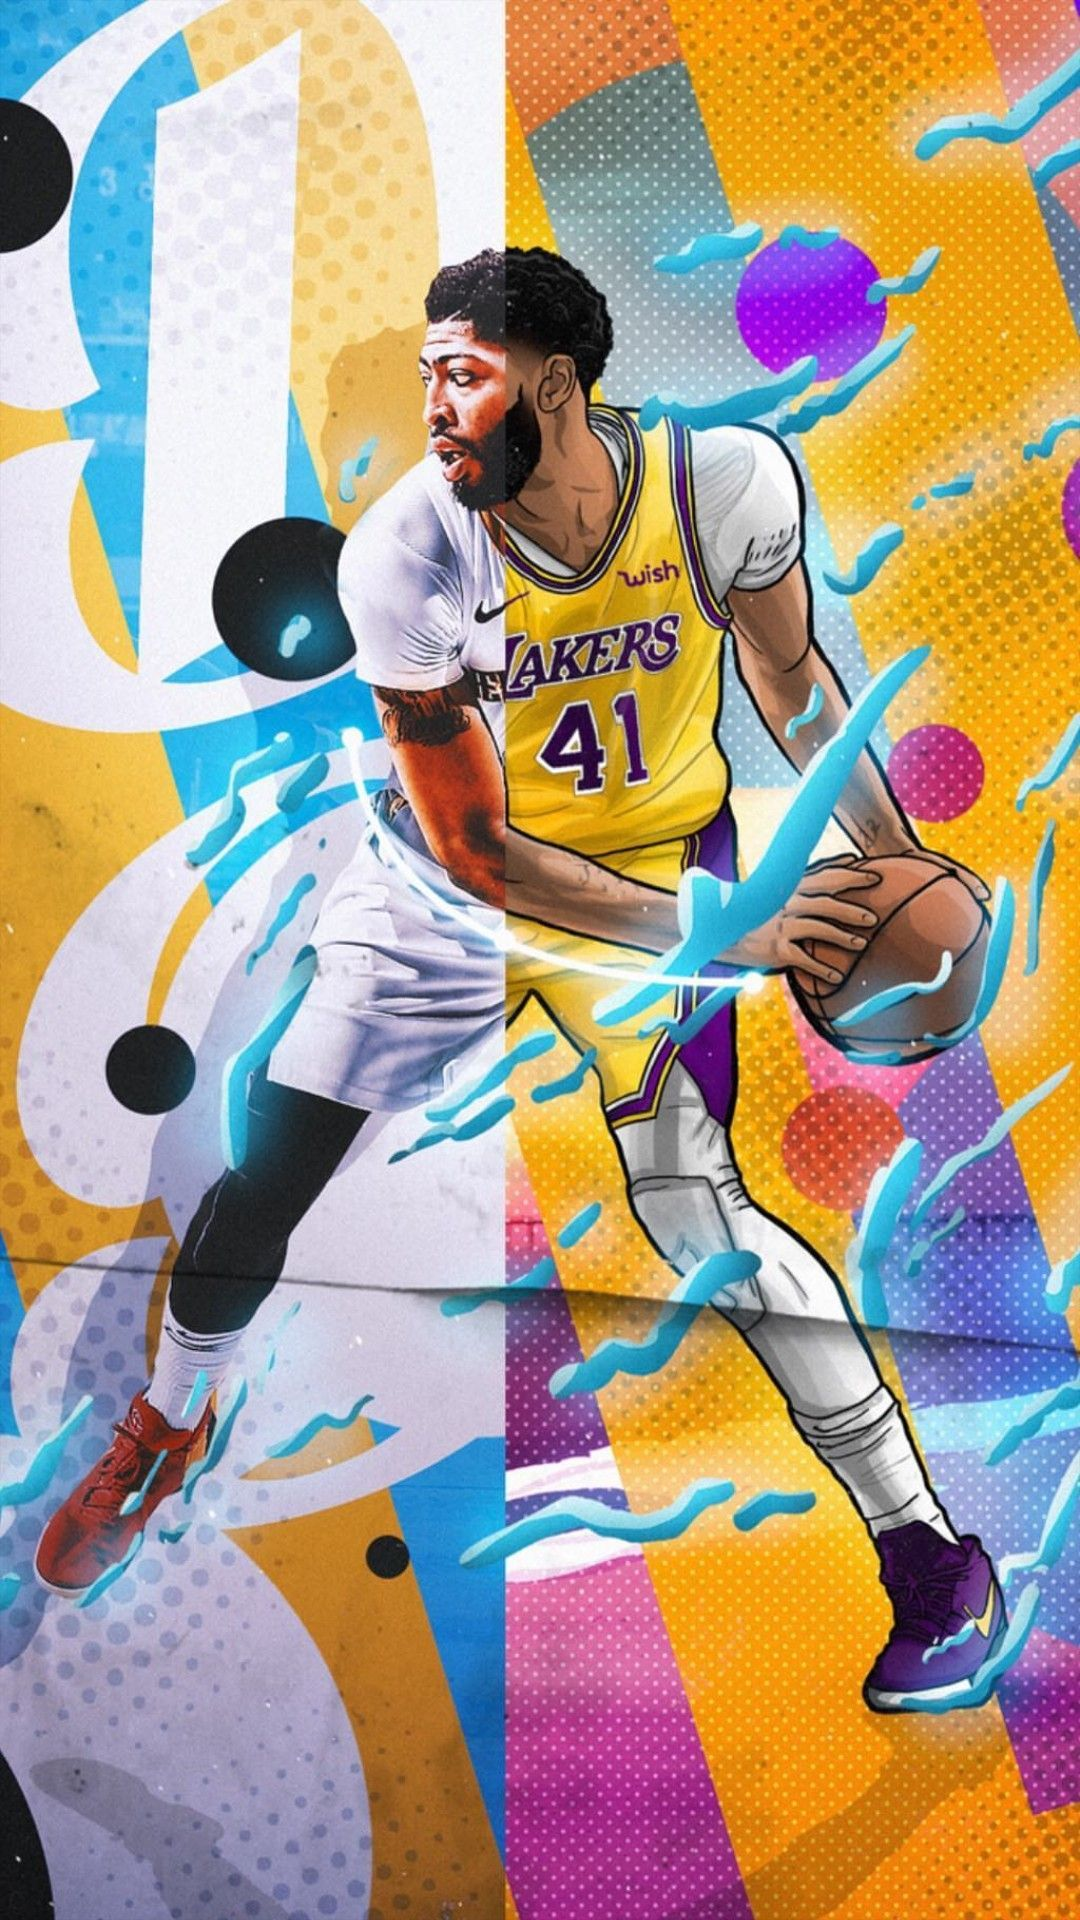 Lakers Wallpaper Iphone On High Quality Wallpaper On Snowman Wallpapers Com Iphone Android Wallpaper Lakers Nba Pictures Lakers Wallpaper Anthony Davis